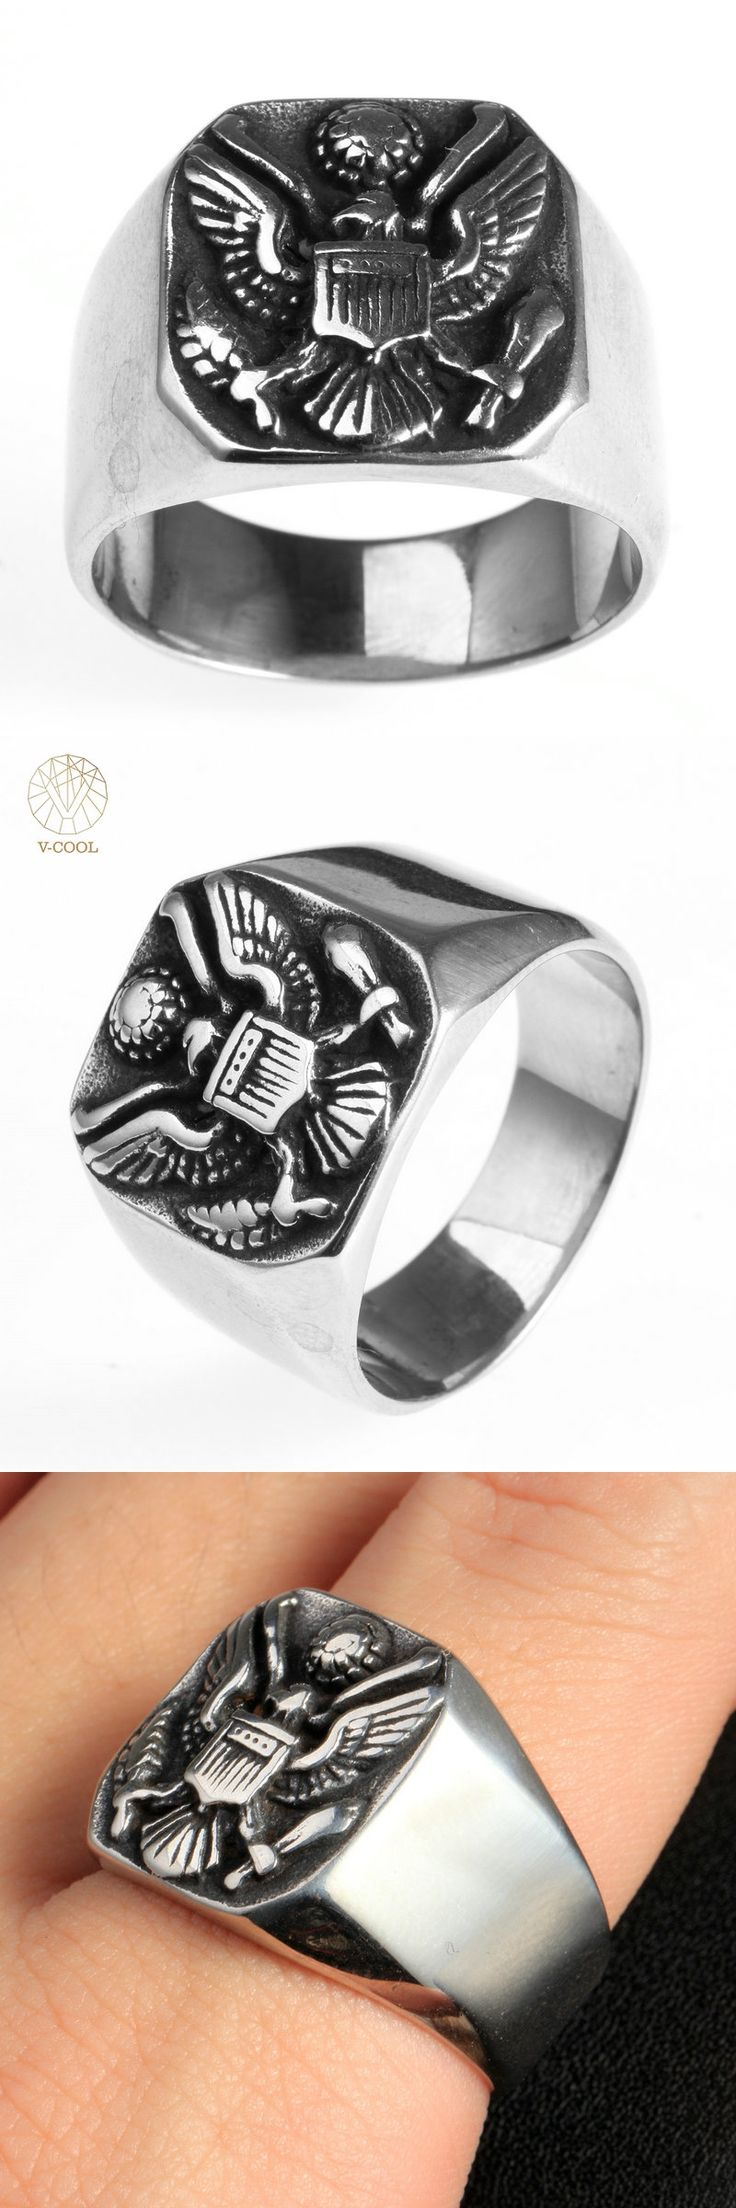 VCOOL Vintage Eagle Ring With A Coat Of Arms Of The Russian Stainless Steel Man High Quality Jewelry Ring Russian Style VR081